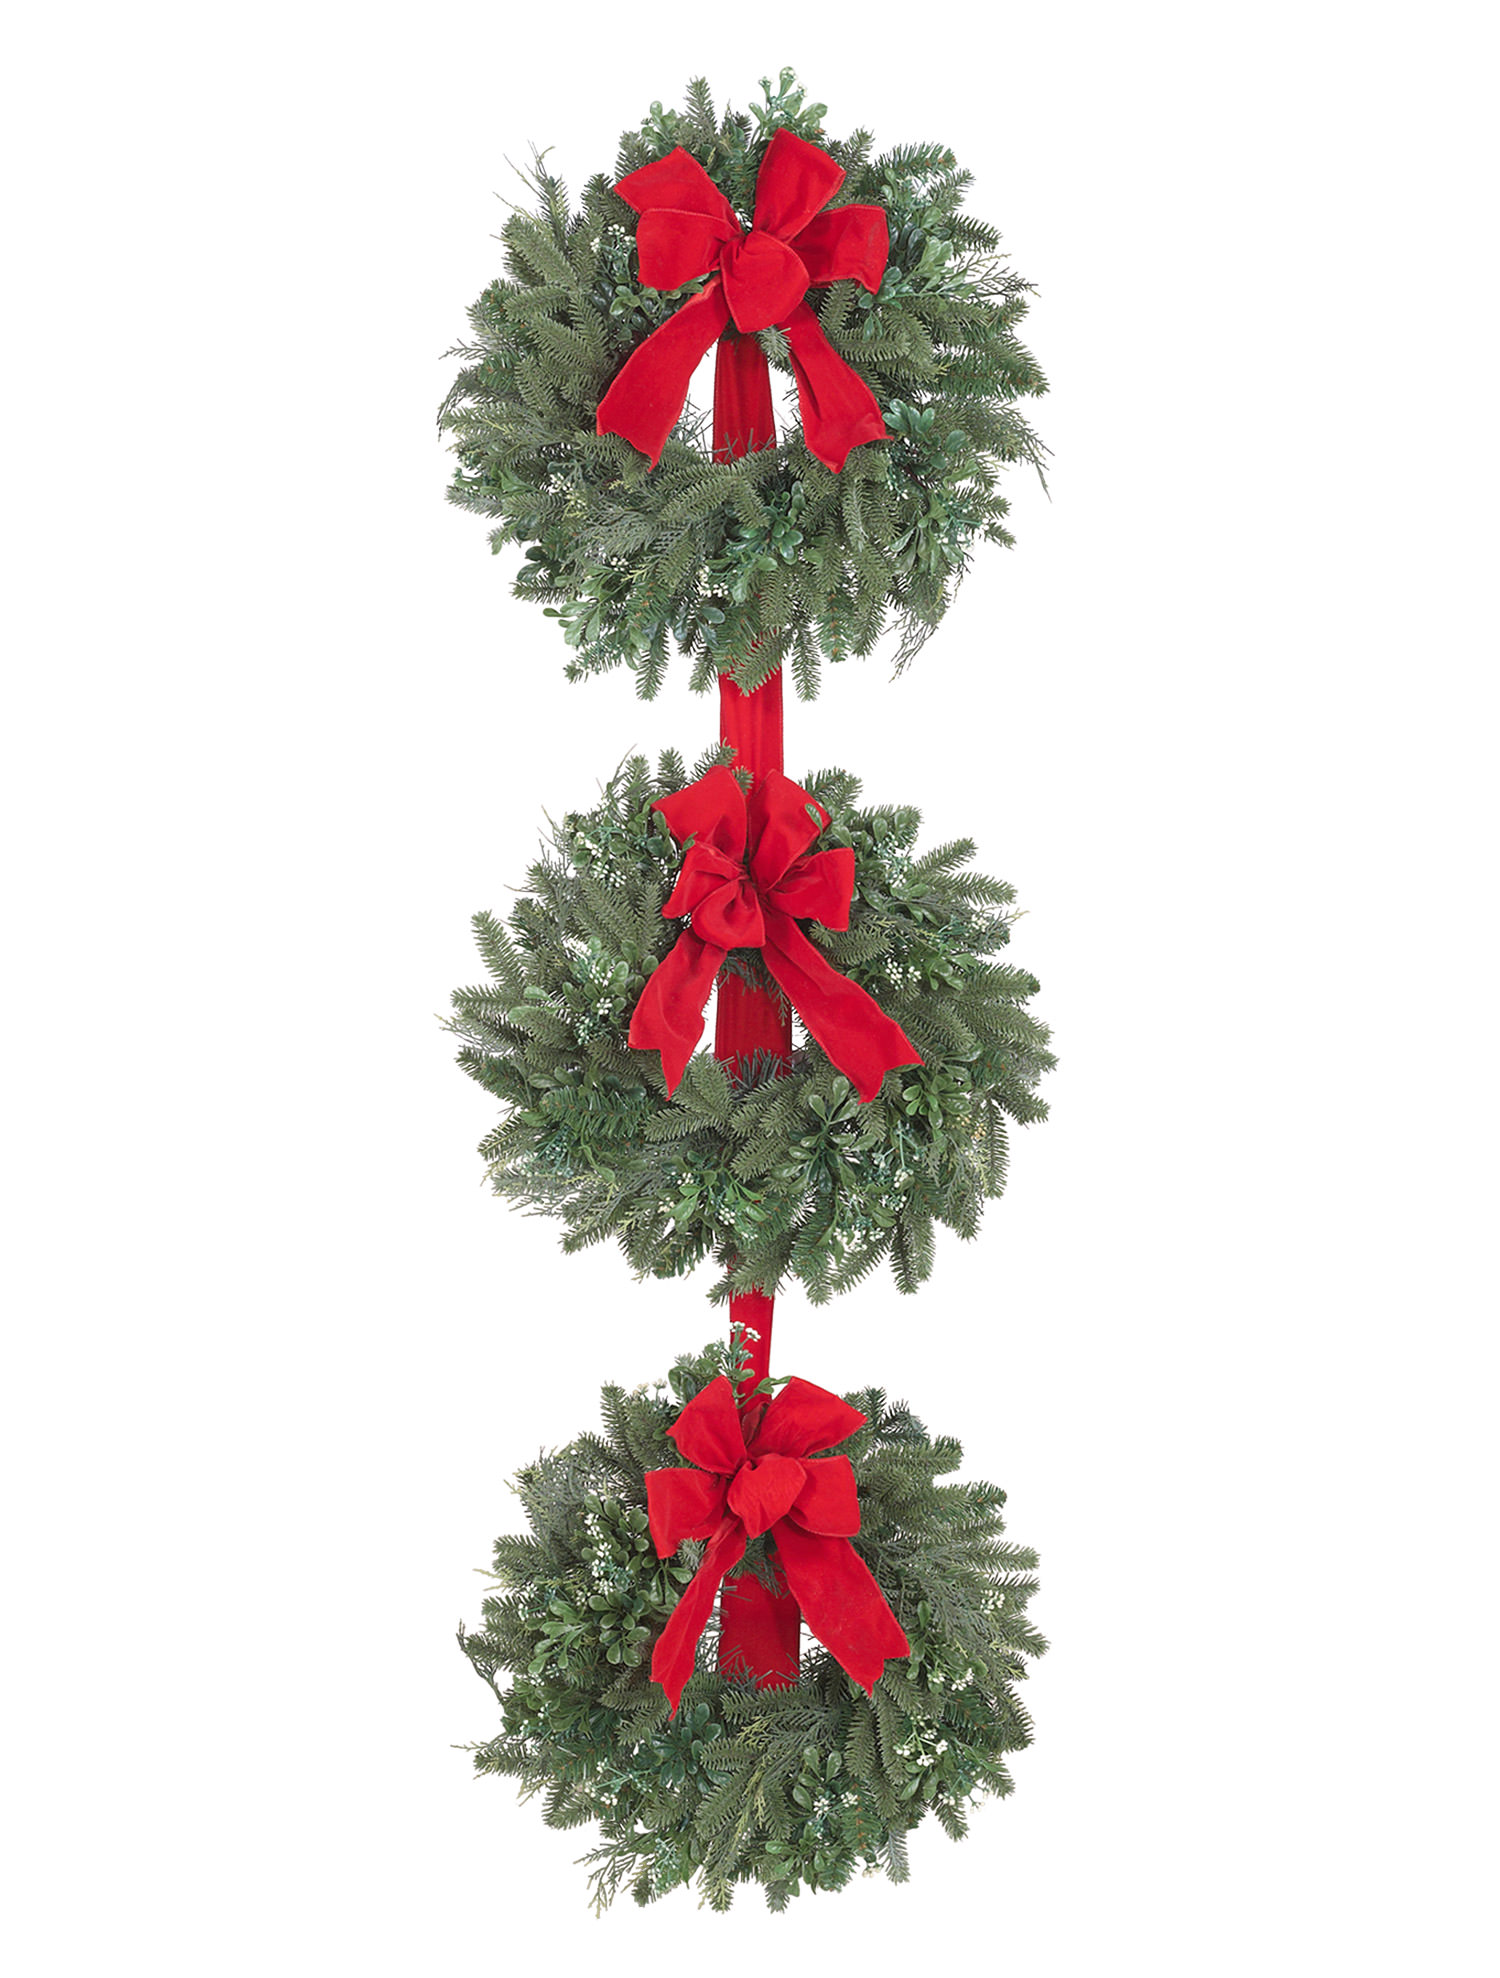 DIY Christmas Decorations The Whiz One